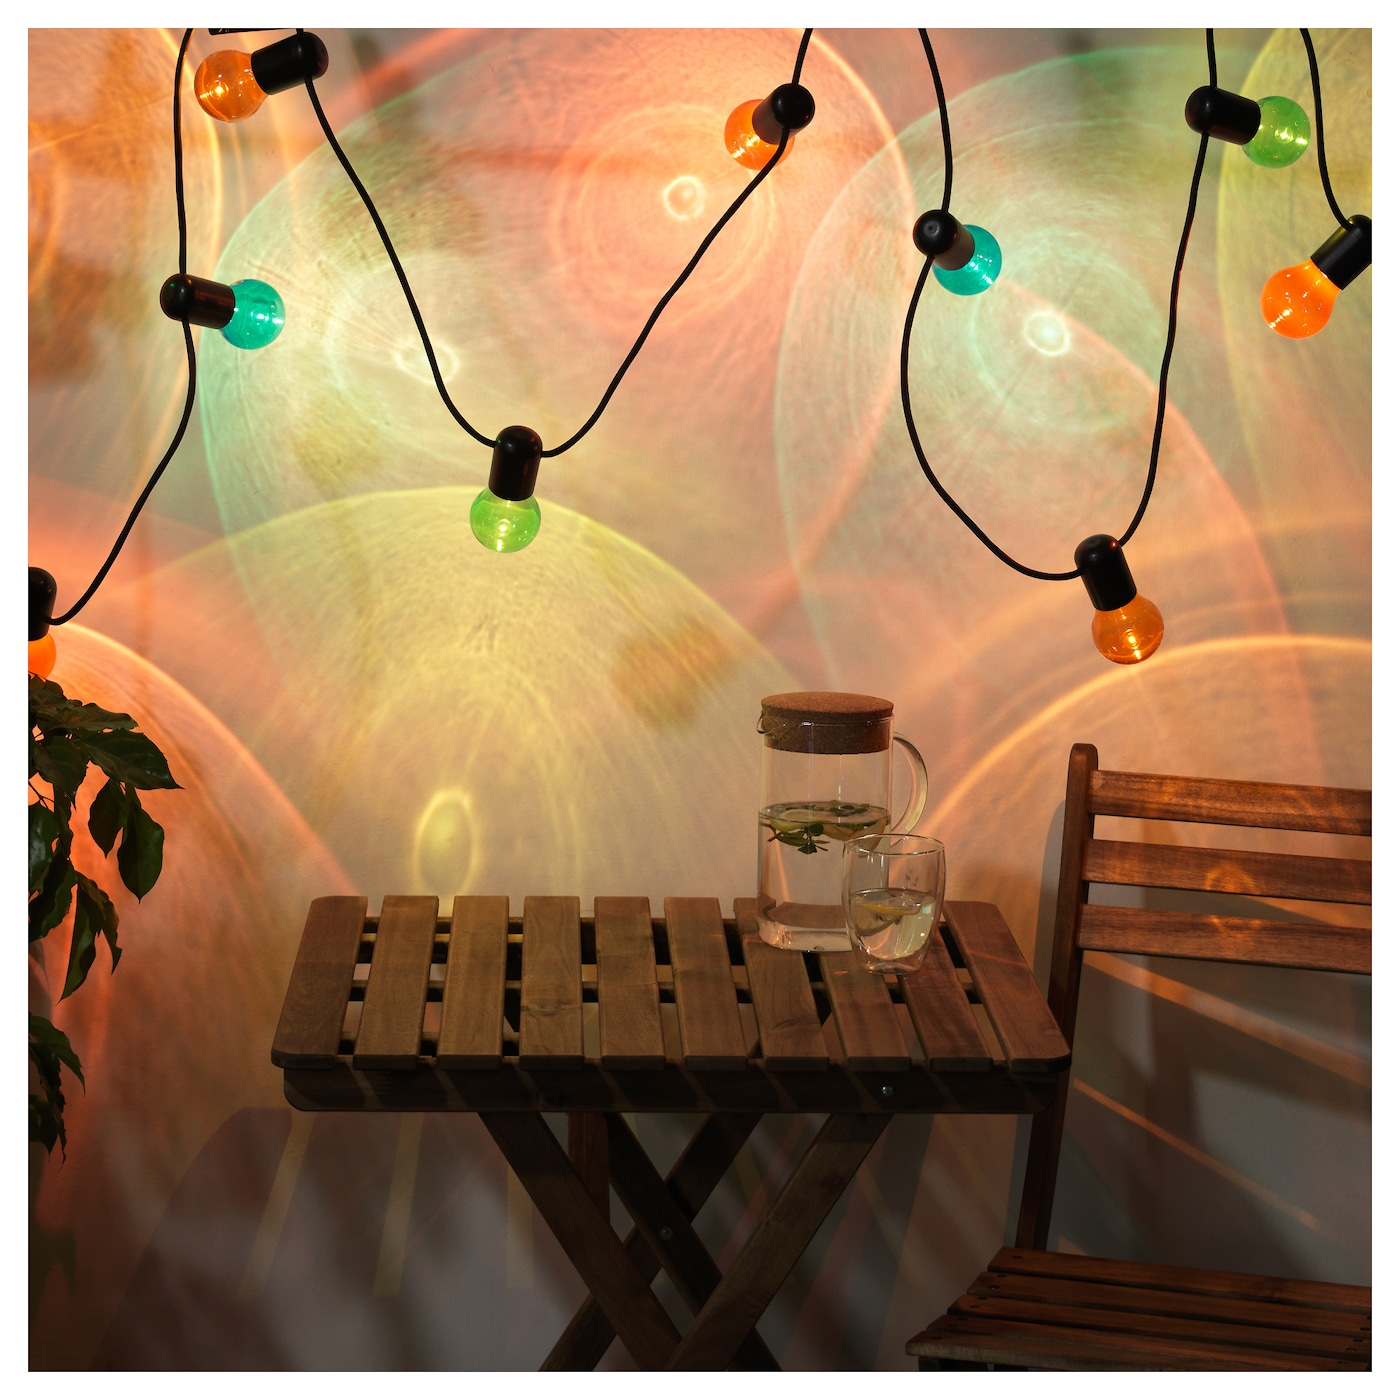 IKEA SOLVINDEN LED lighting chain with 12 bulbs Creates a dramatic effect in the dark.